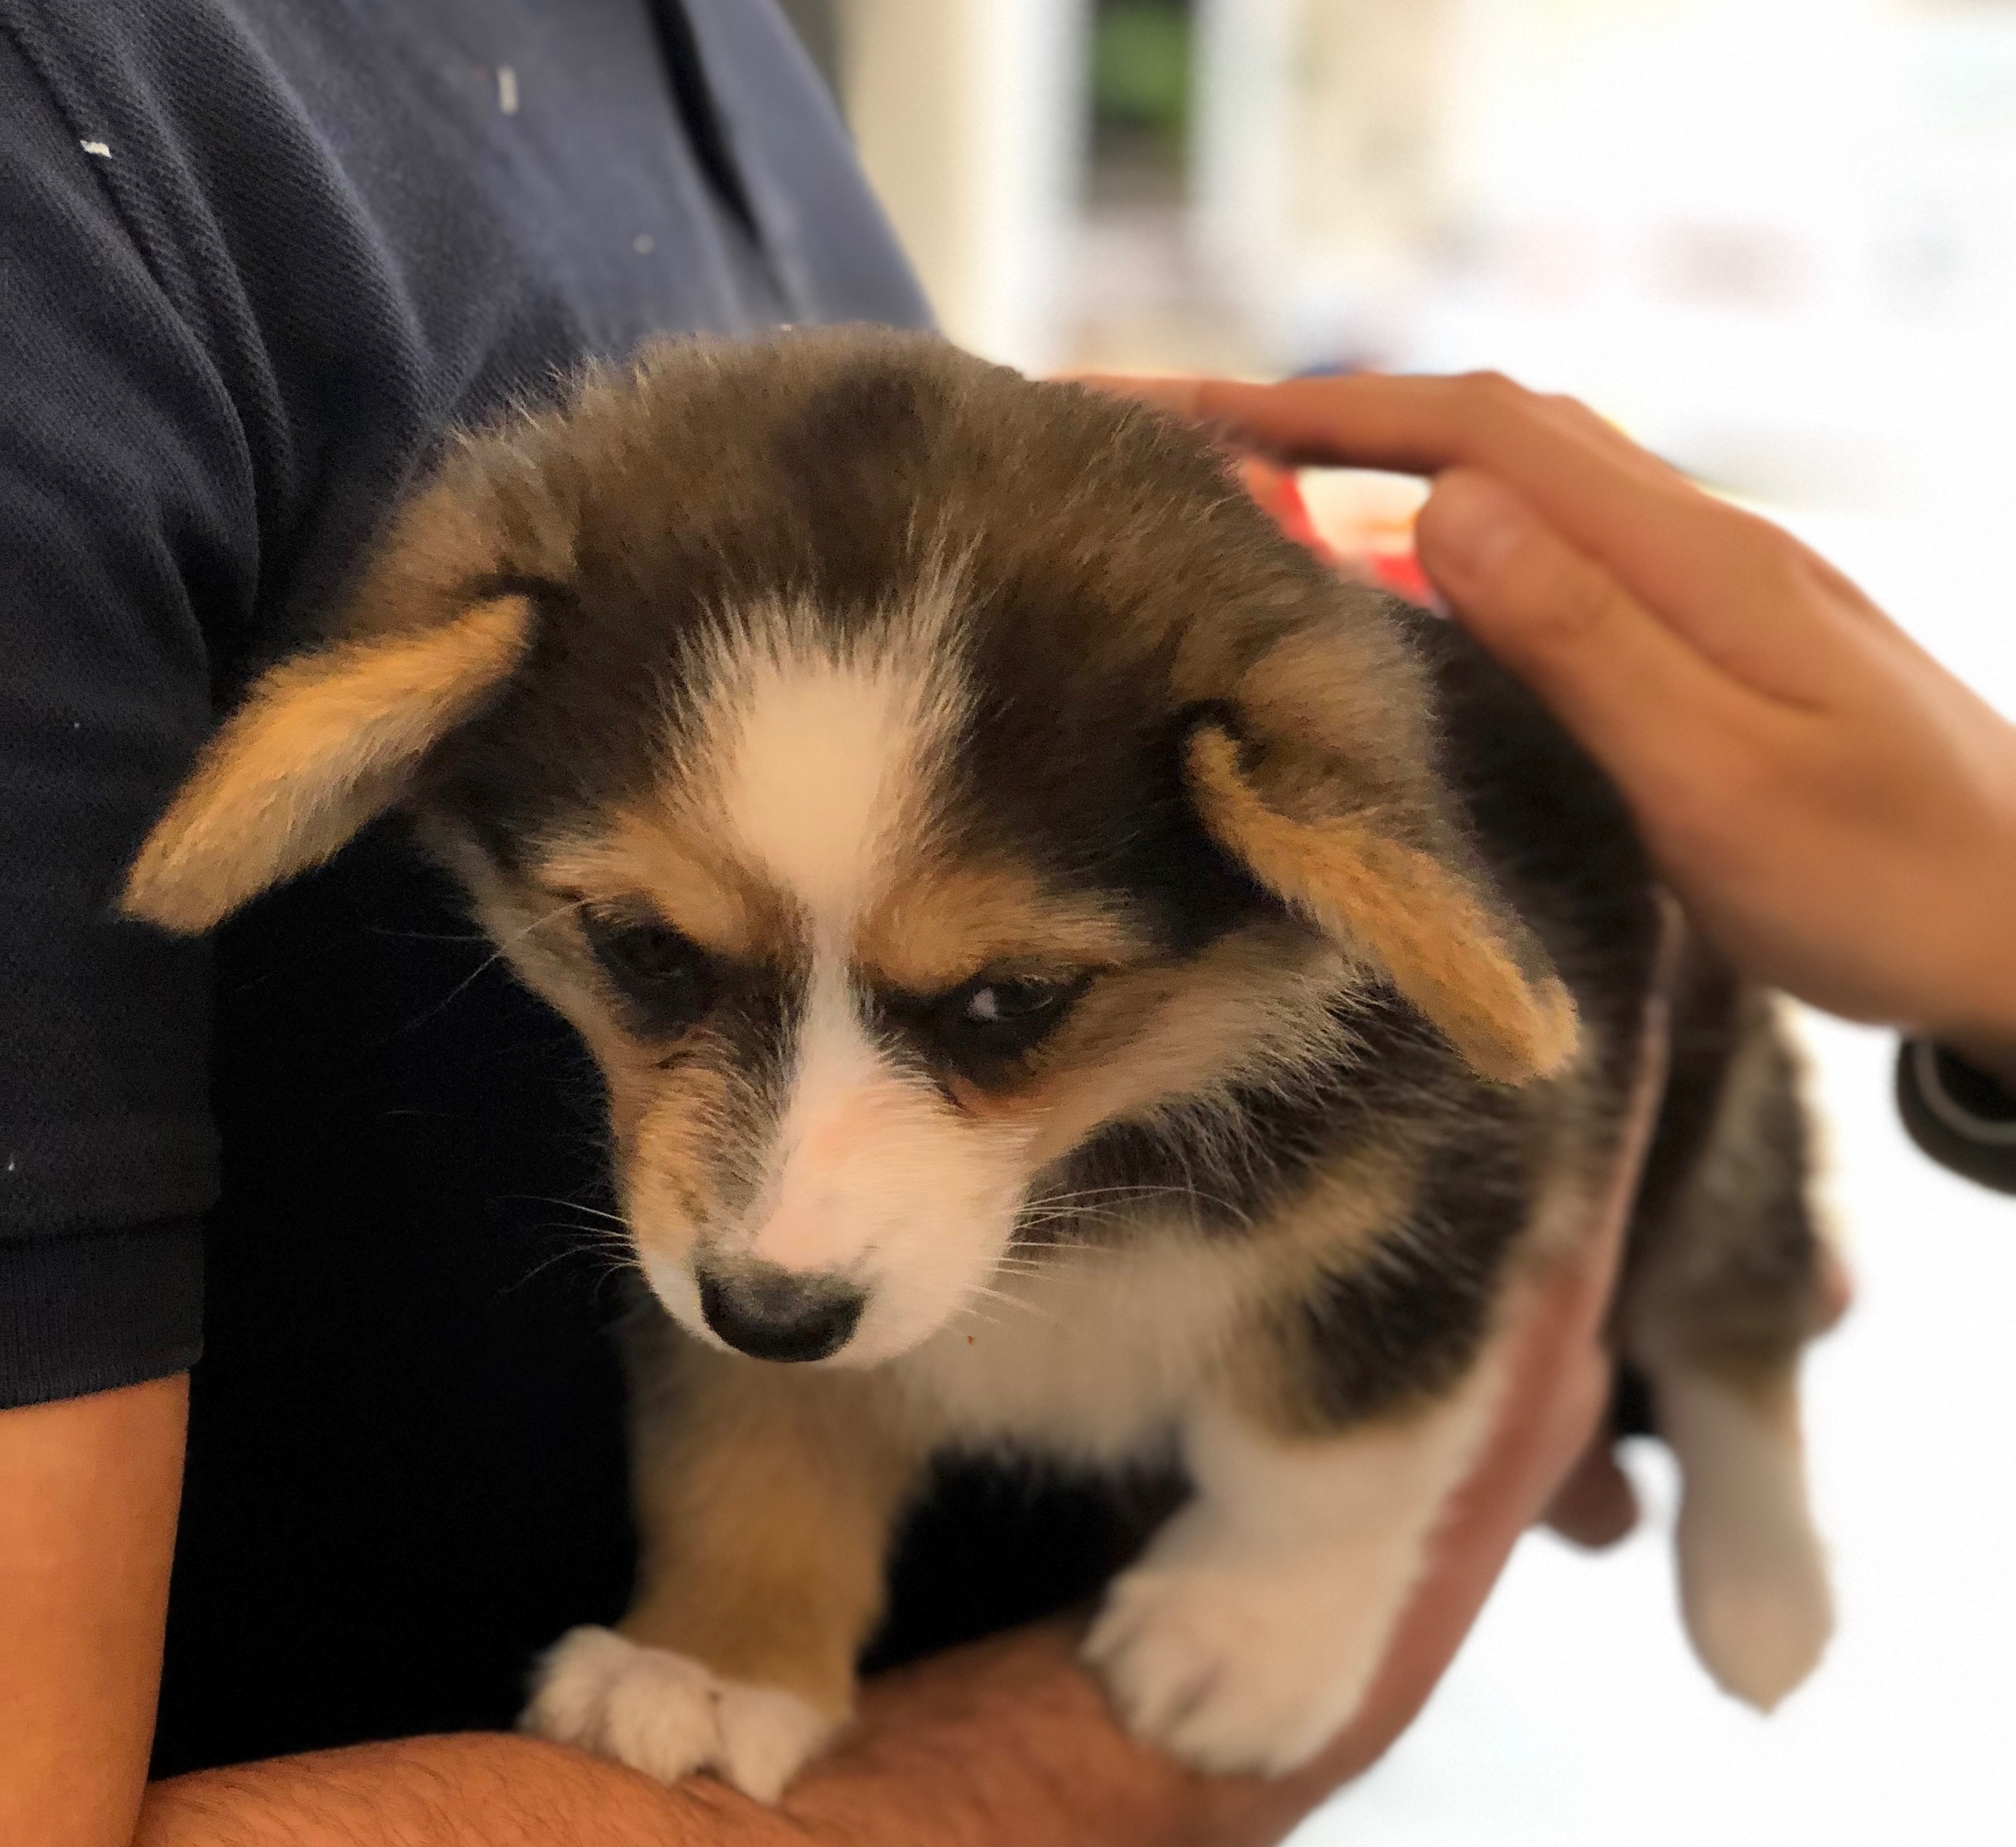 Sad Looking Tiny Corgi Puppy Being Held And Petted